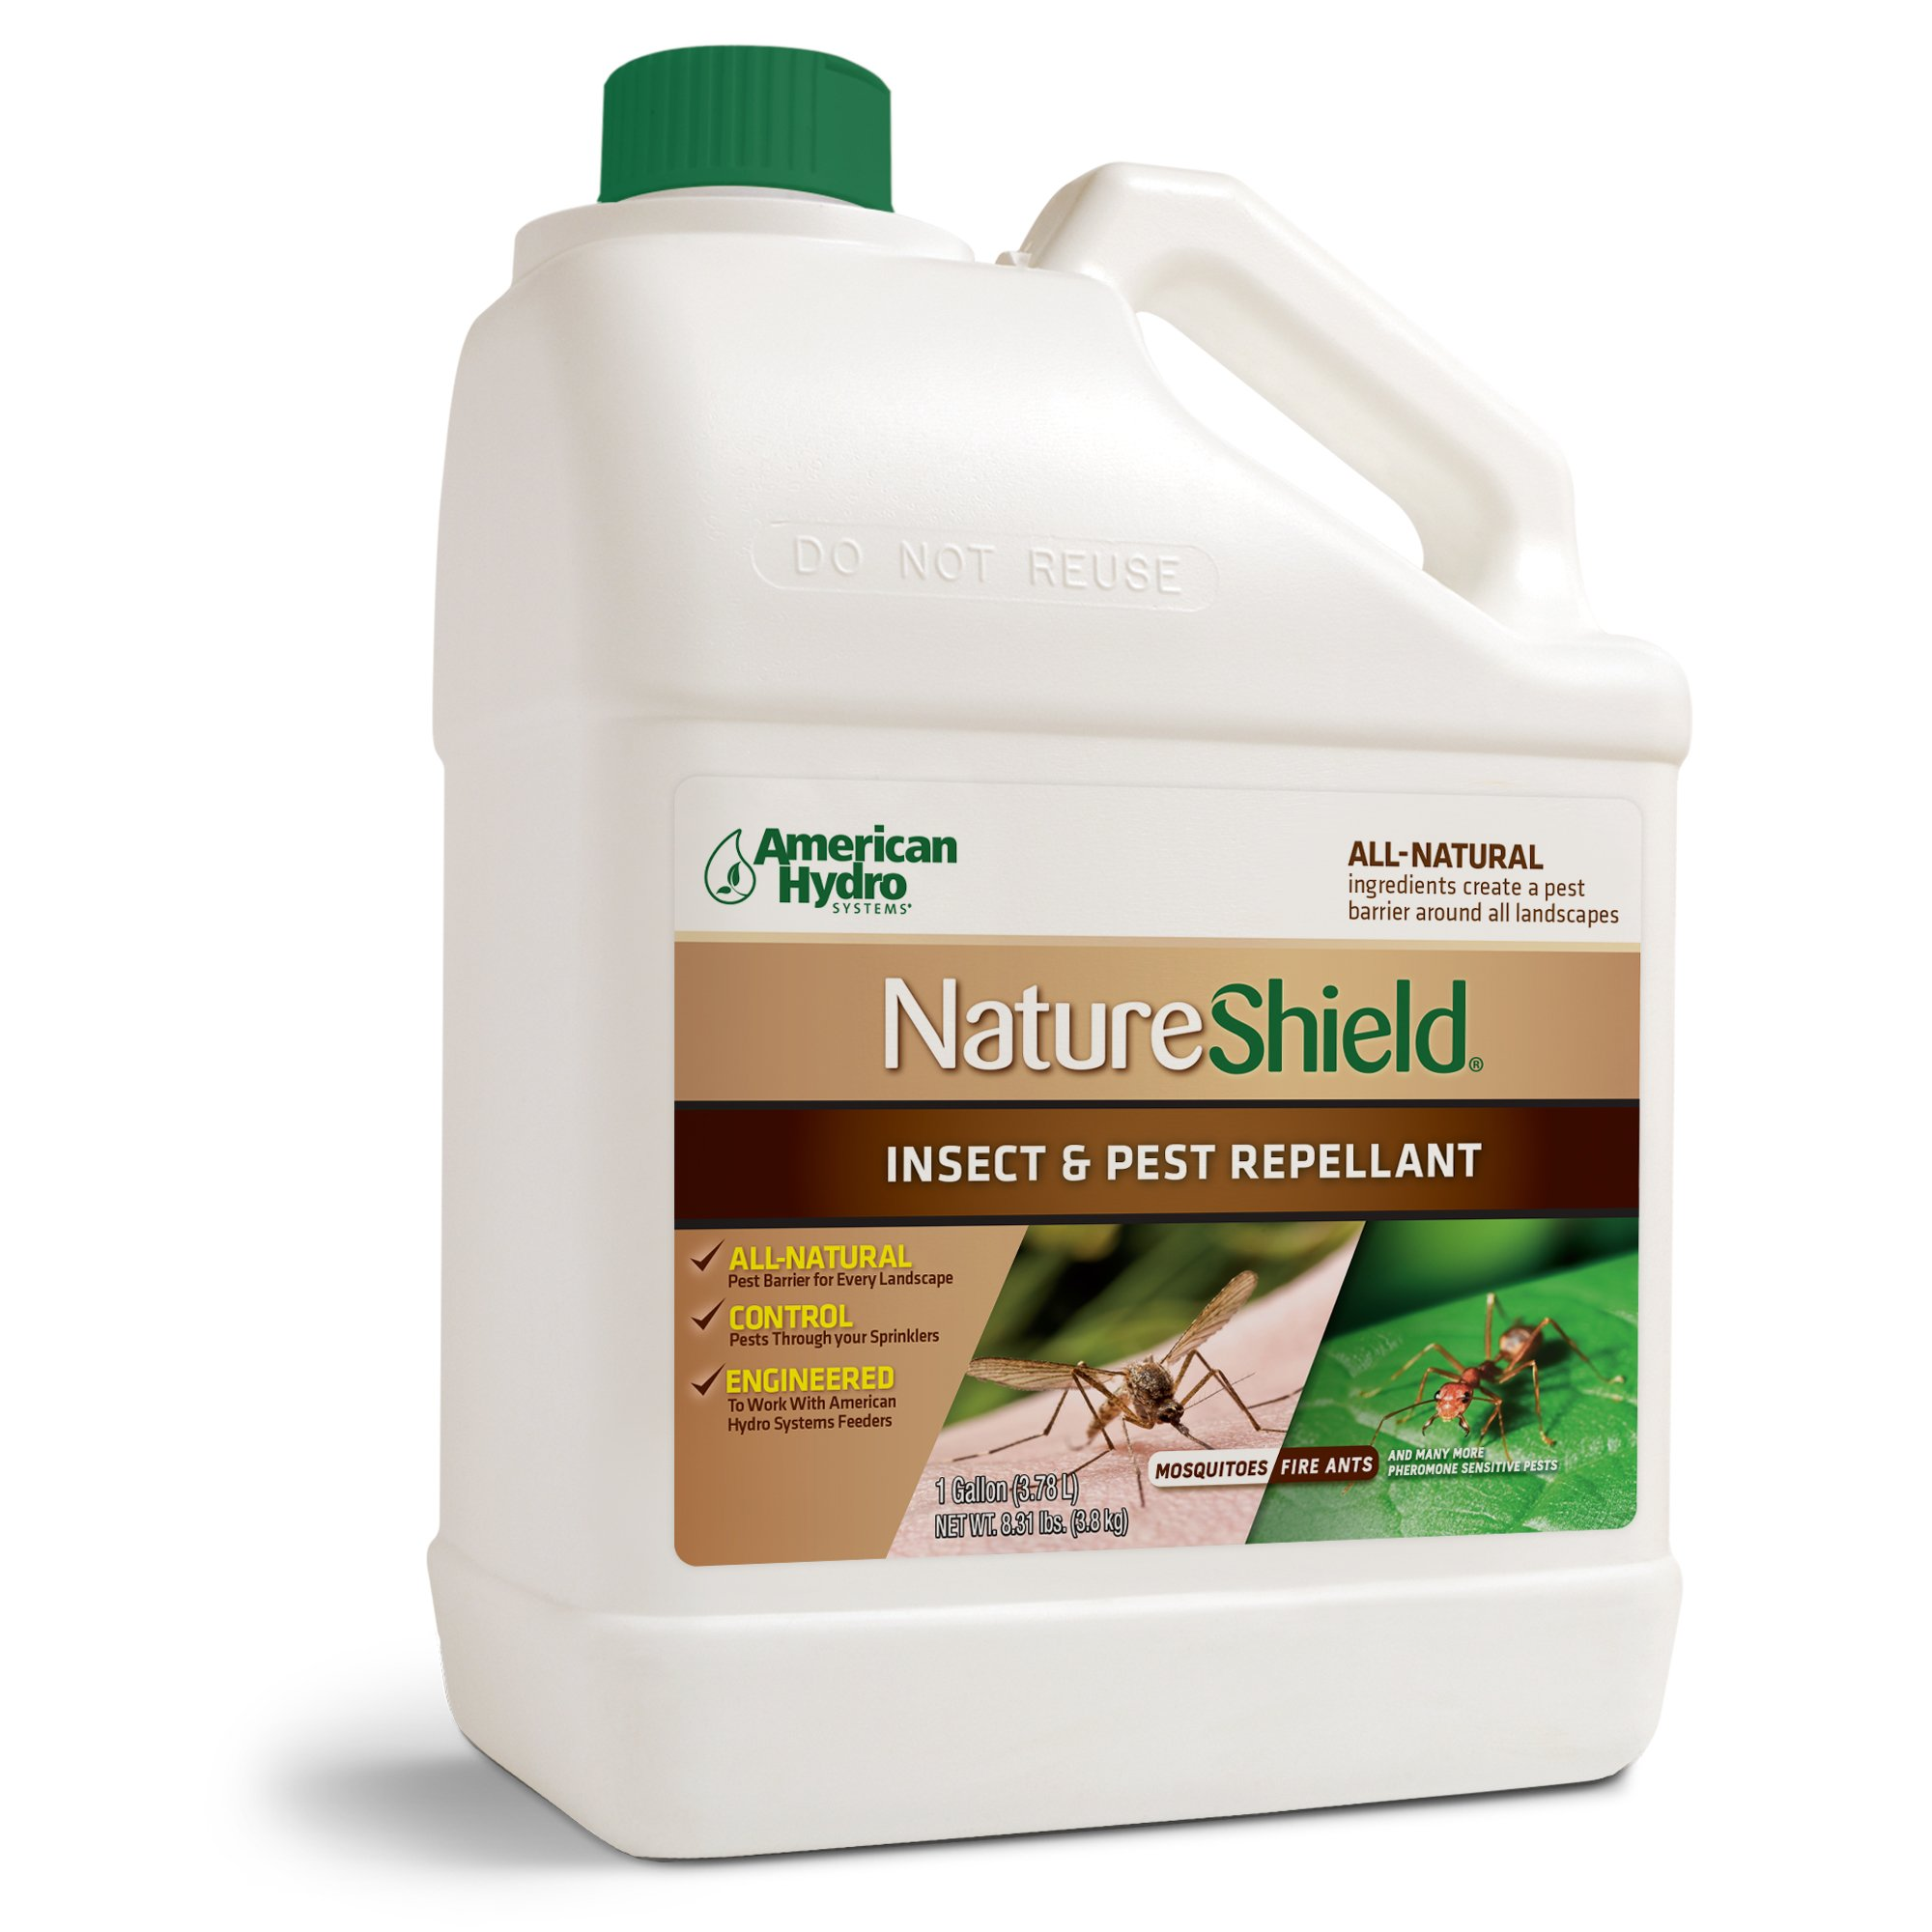 Nature Shield is the Only Pest Control Product on the Market that Integrates a Proprietary Blend of Essential Oils to Create an All-Natural Pest Barrier Around an Entire Landscape. by American Hydro Systems